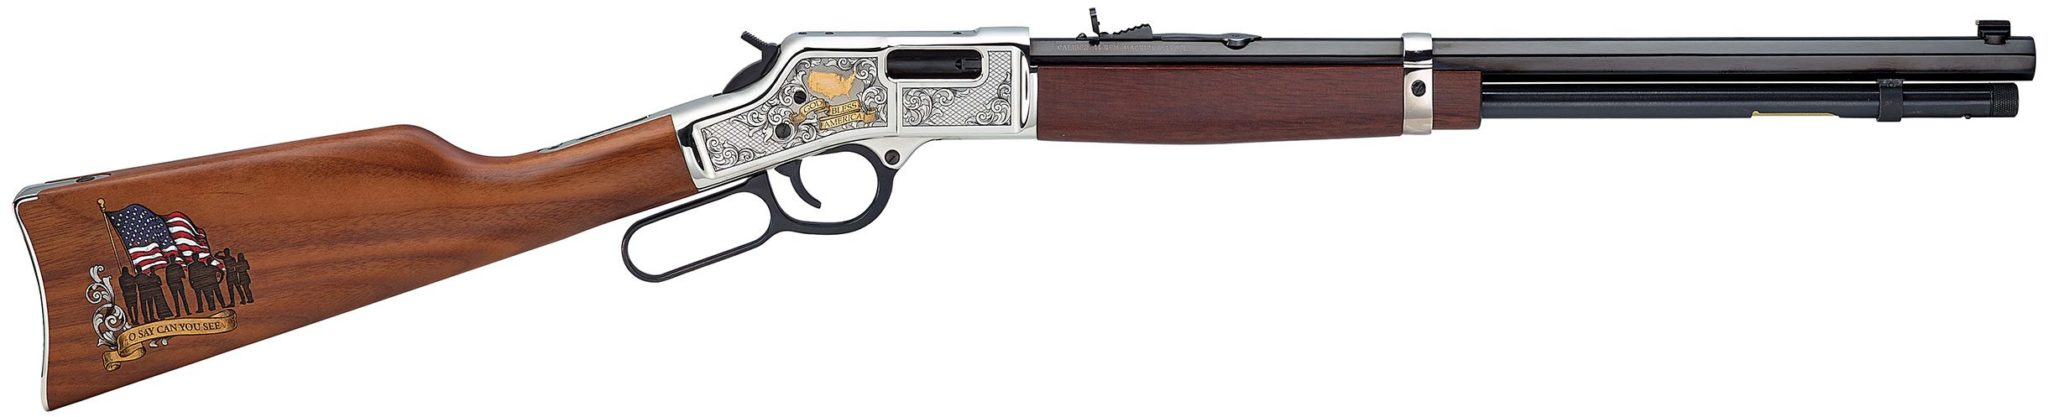 Henry Repeating Arms Goldenboy 44 Magnum | 44 Special